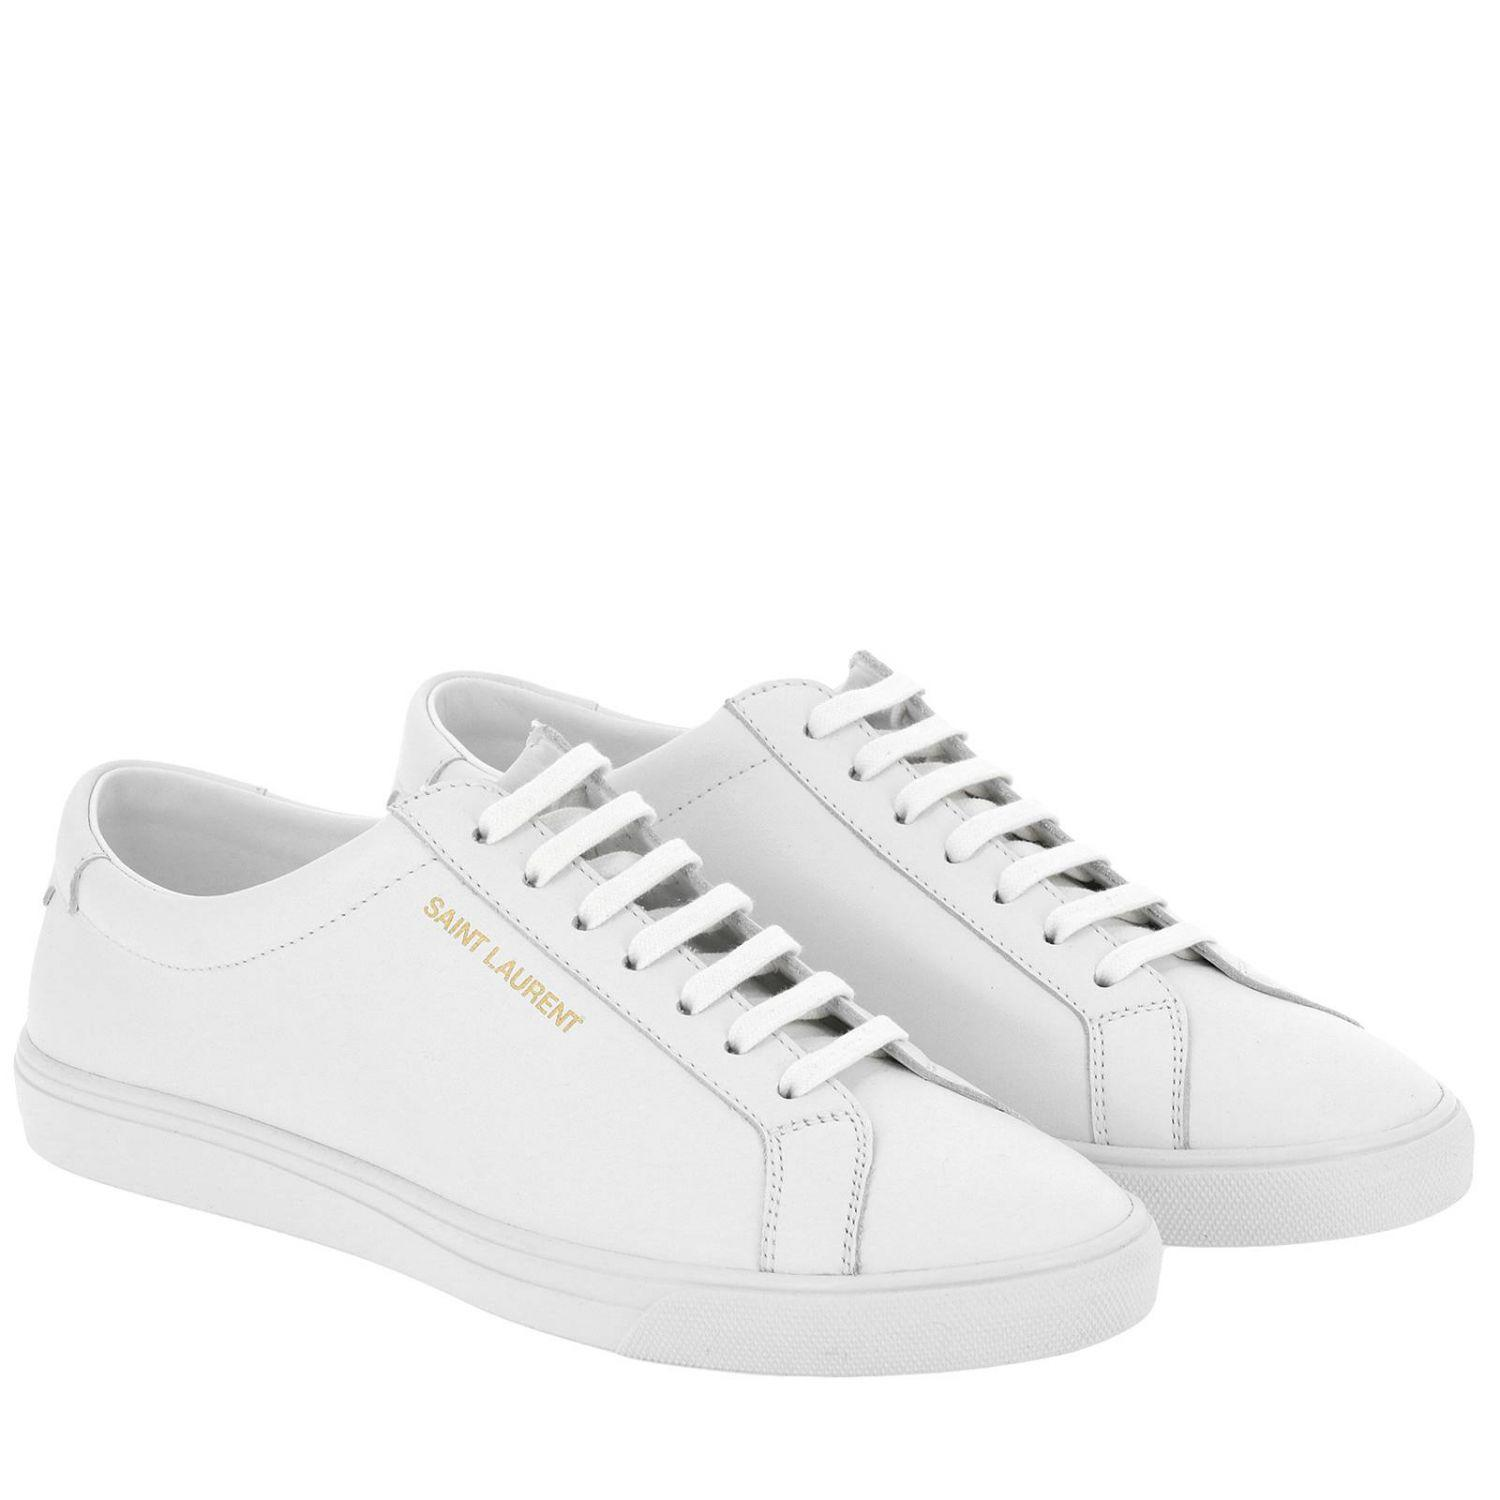 3df51db6ed10 Lyst - Saint Laurent Sneakers Shoes Men in White for Men - Save 25%